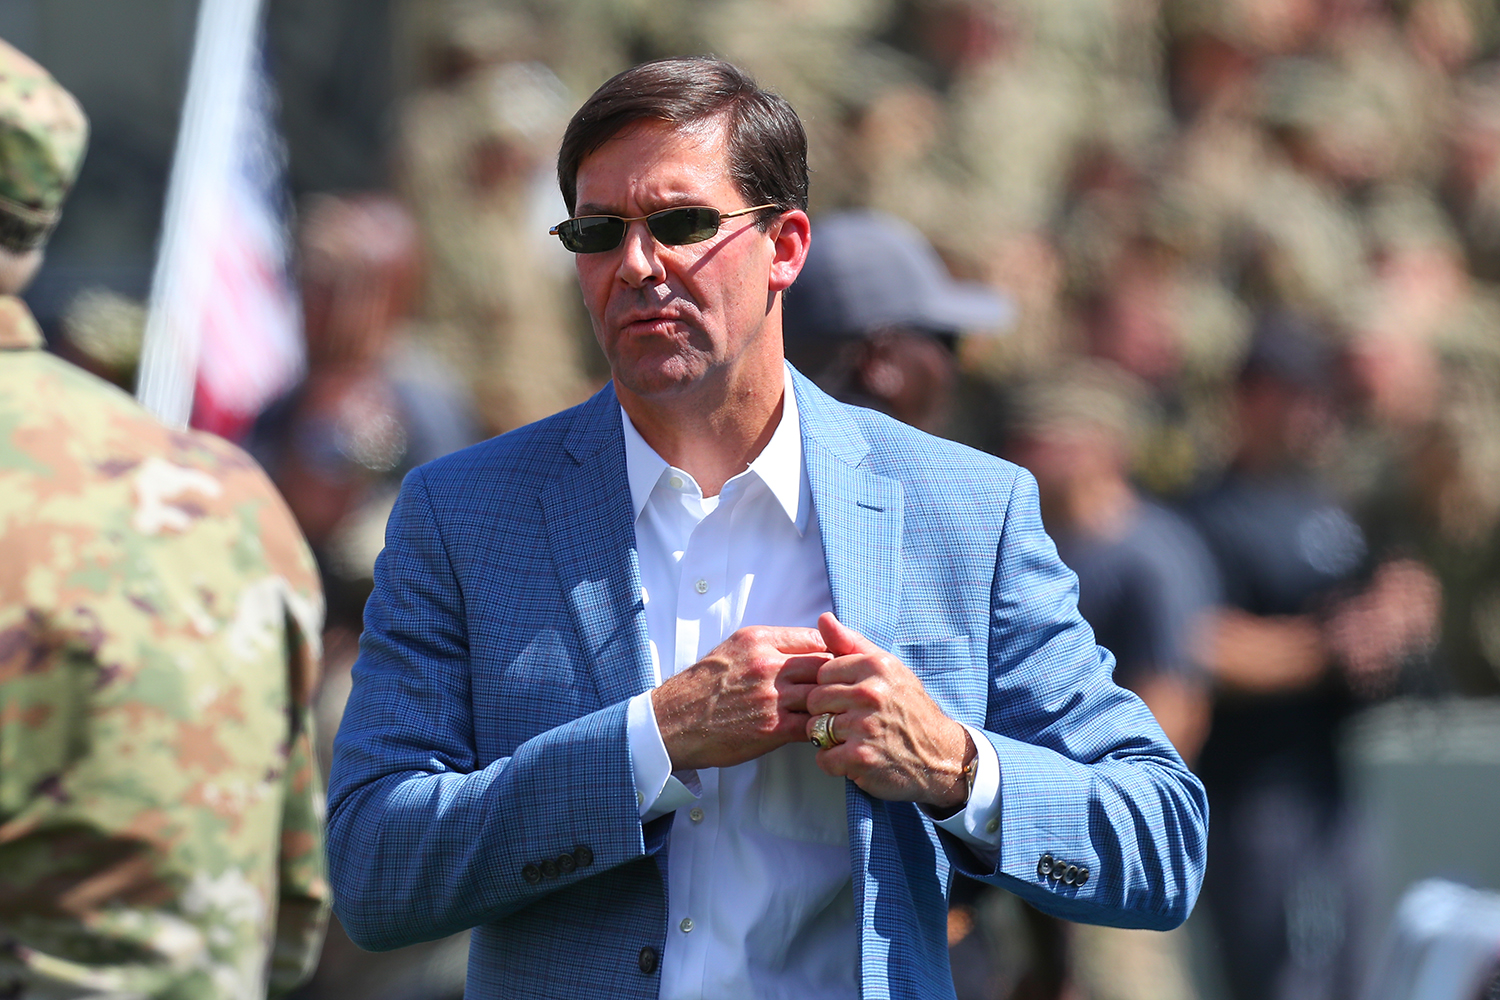 Esper, then secretary of the Army, attends a college football game in West Point, New York, on Sept. 15, 2018.